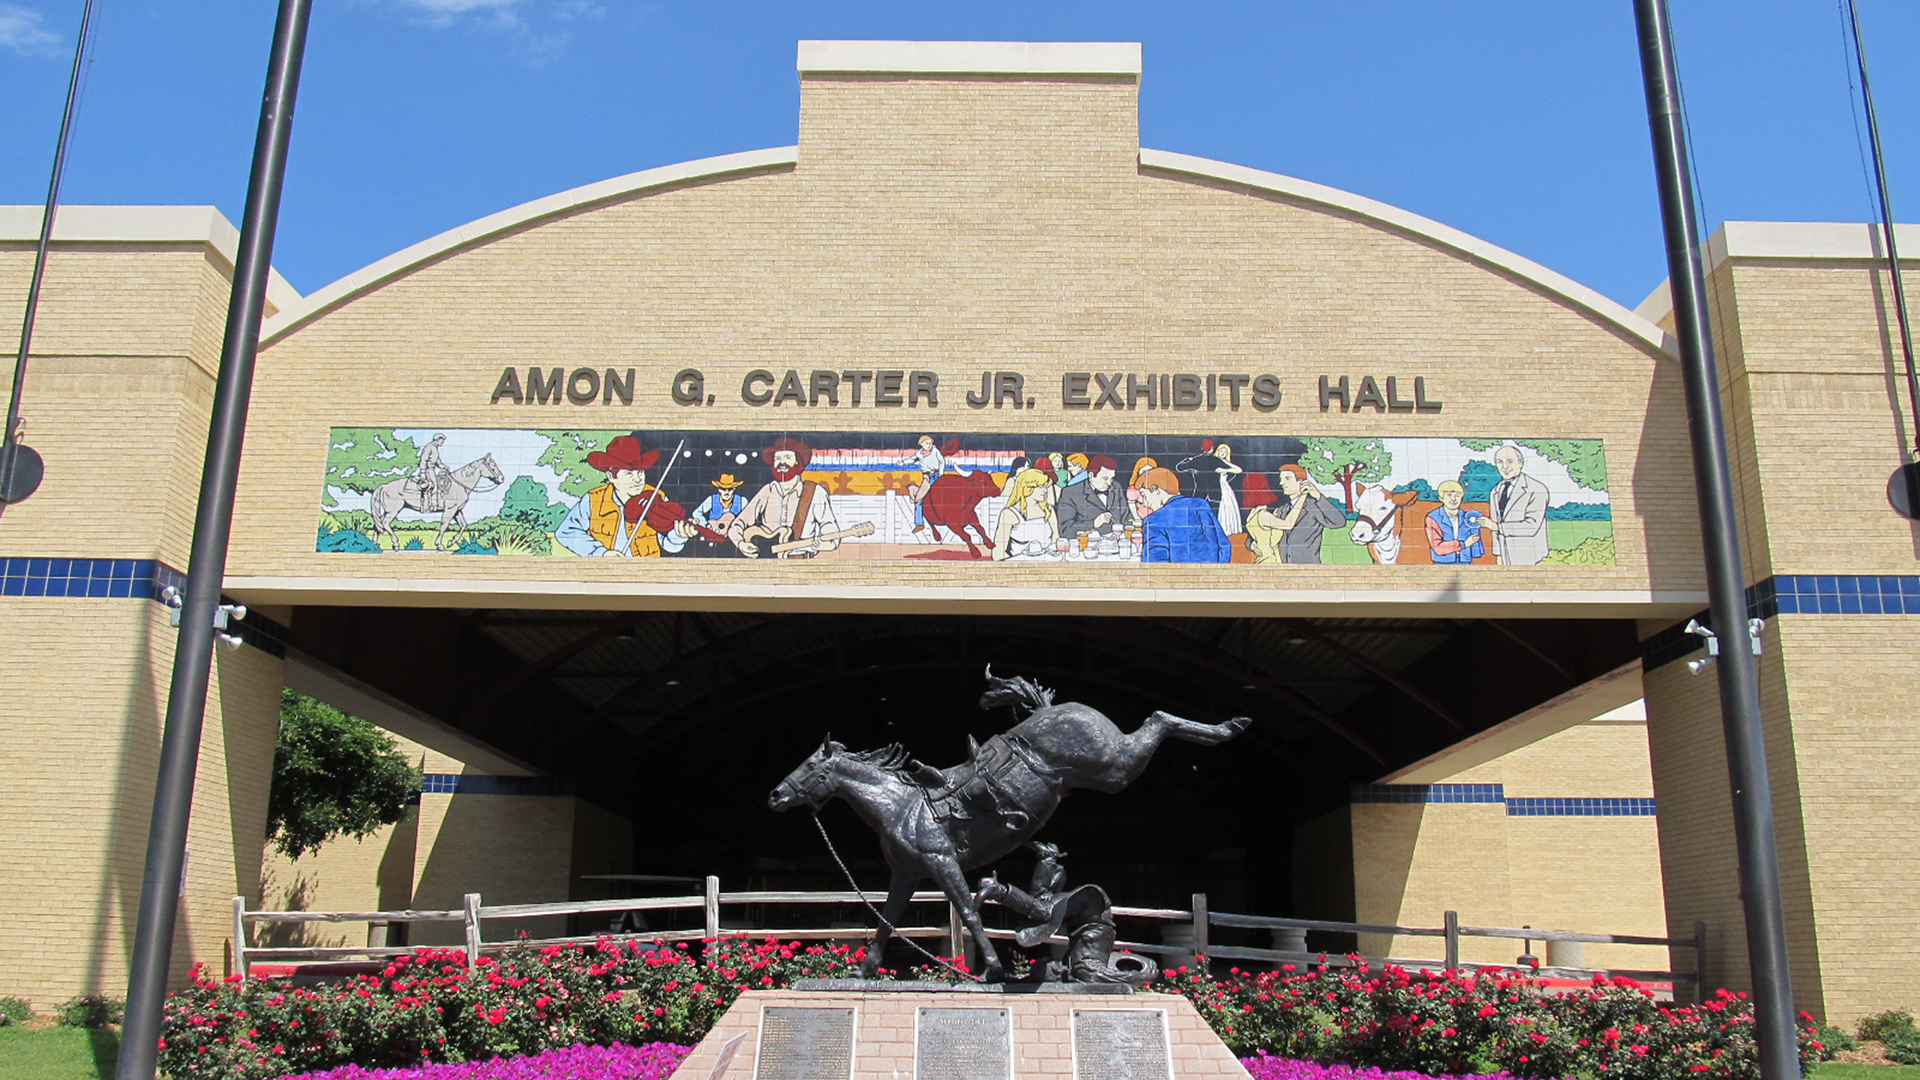 Will Rogers Public Events Exhibit Hall